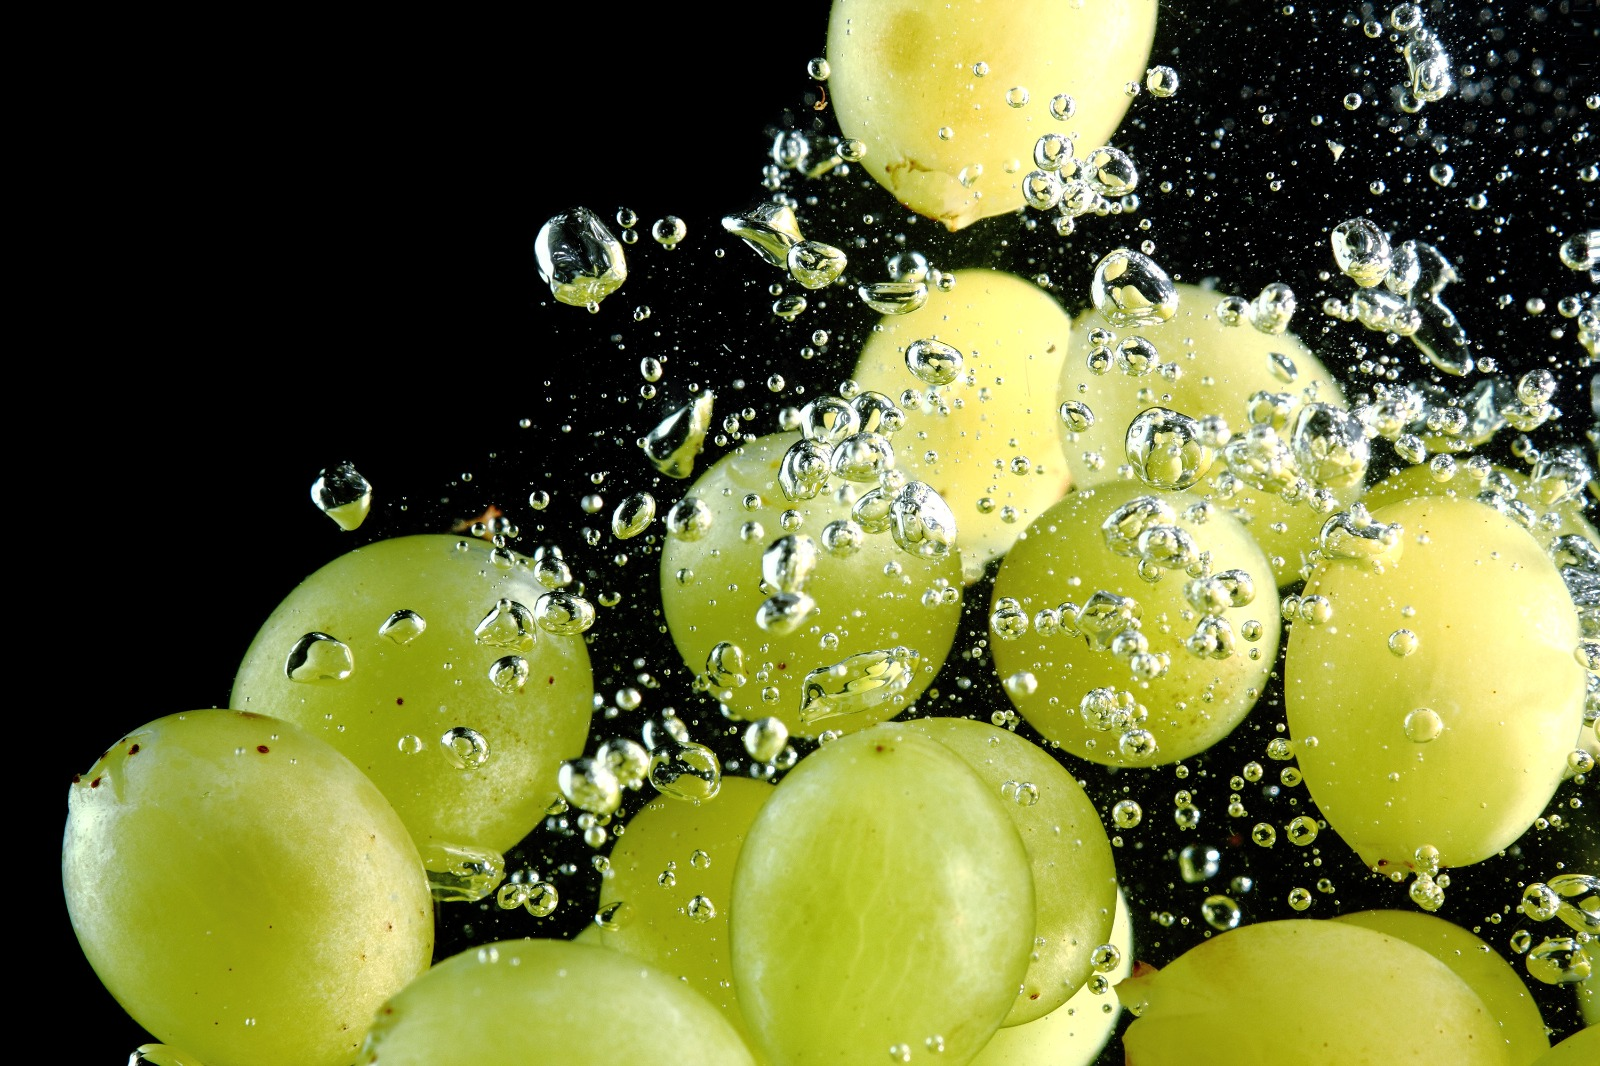 Kiwifruit and Sauvignon Blanc skins: